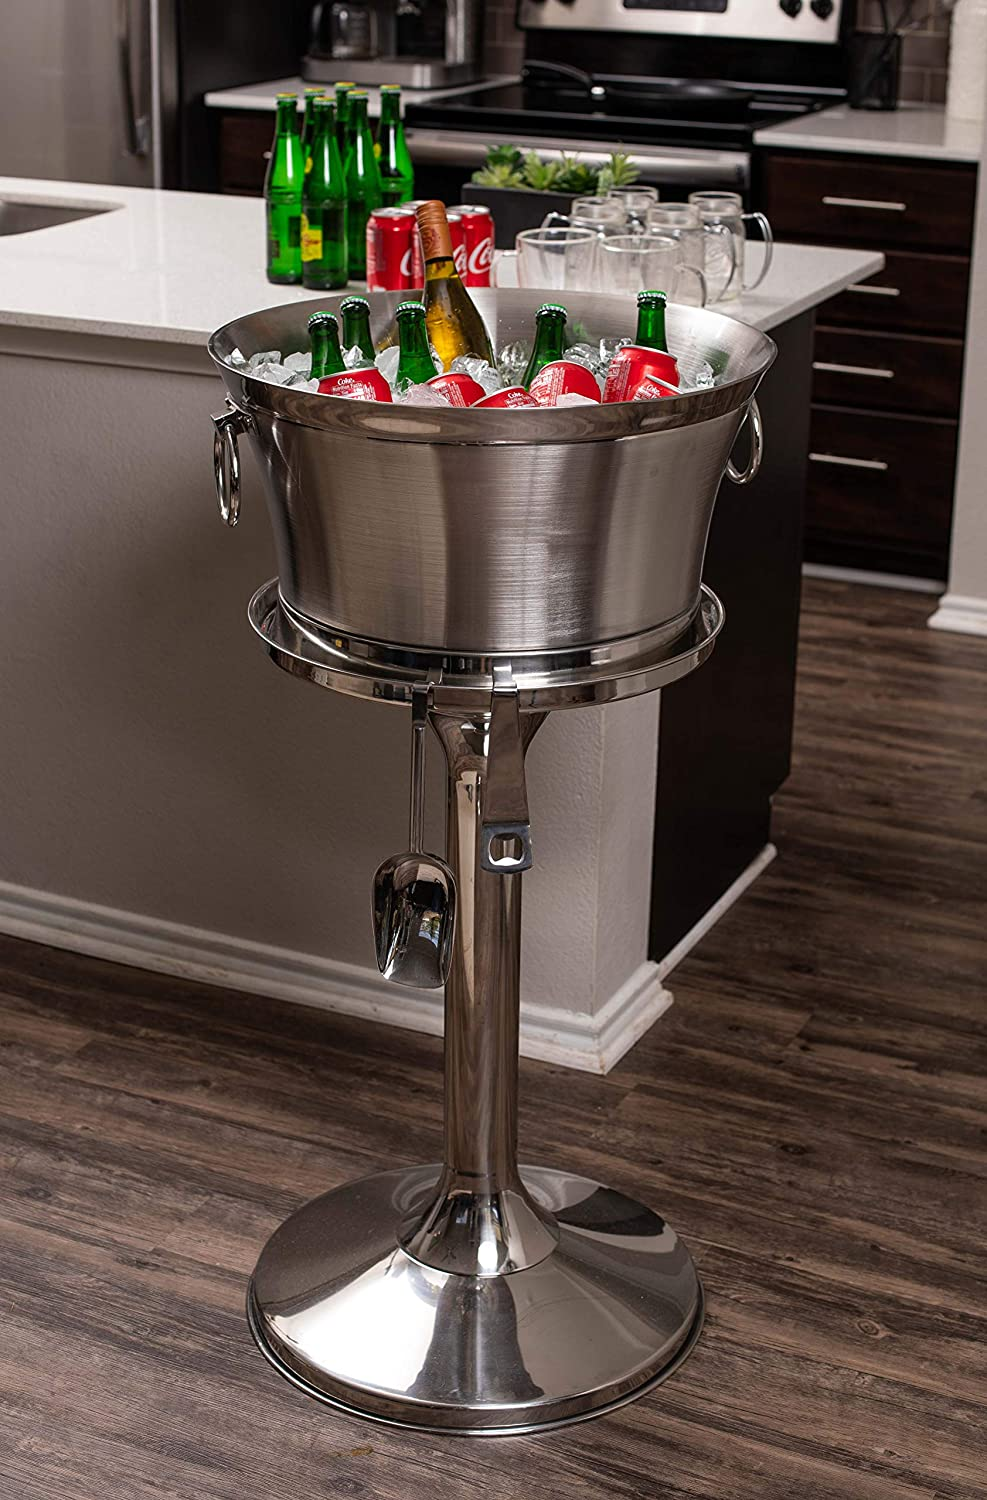 BirdRock Home Metal Beverage Tub with Stand, Scoop and Bottle Opener 18 8 Stainless Steel Double Wall Ice Beverage Cooler Drink Beer Wine Ice Bucket with Handles House Party Events Container Bin